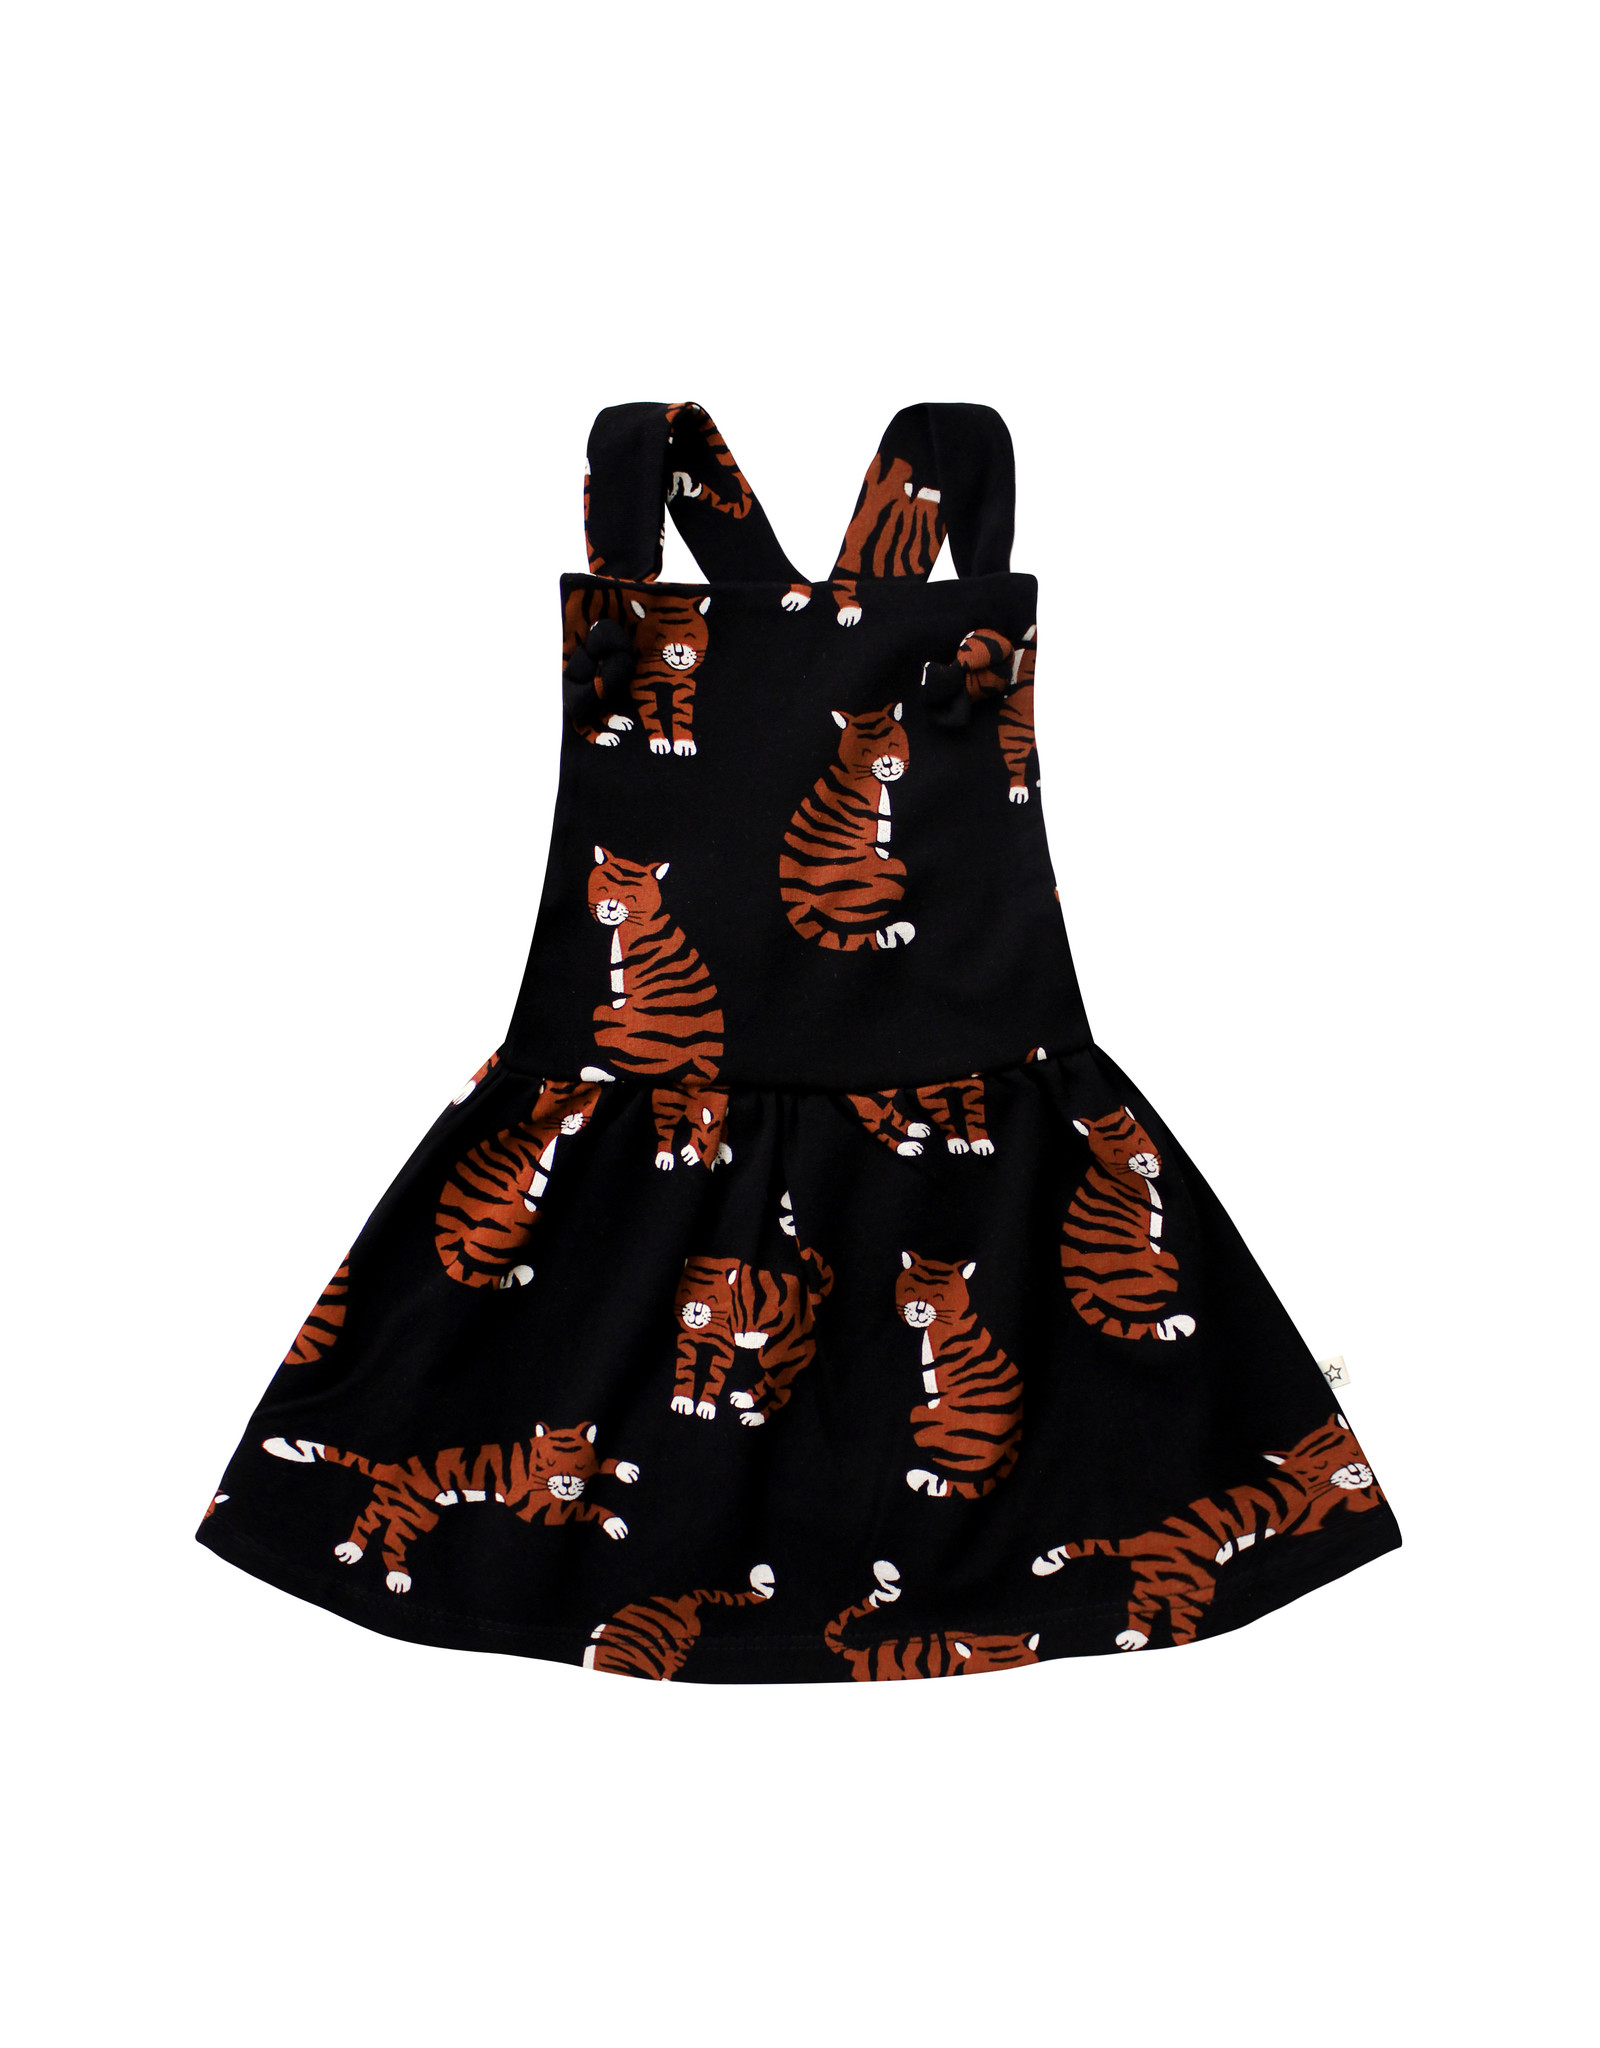 Your Wishes Tigers   Dungaree Dress, Black